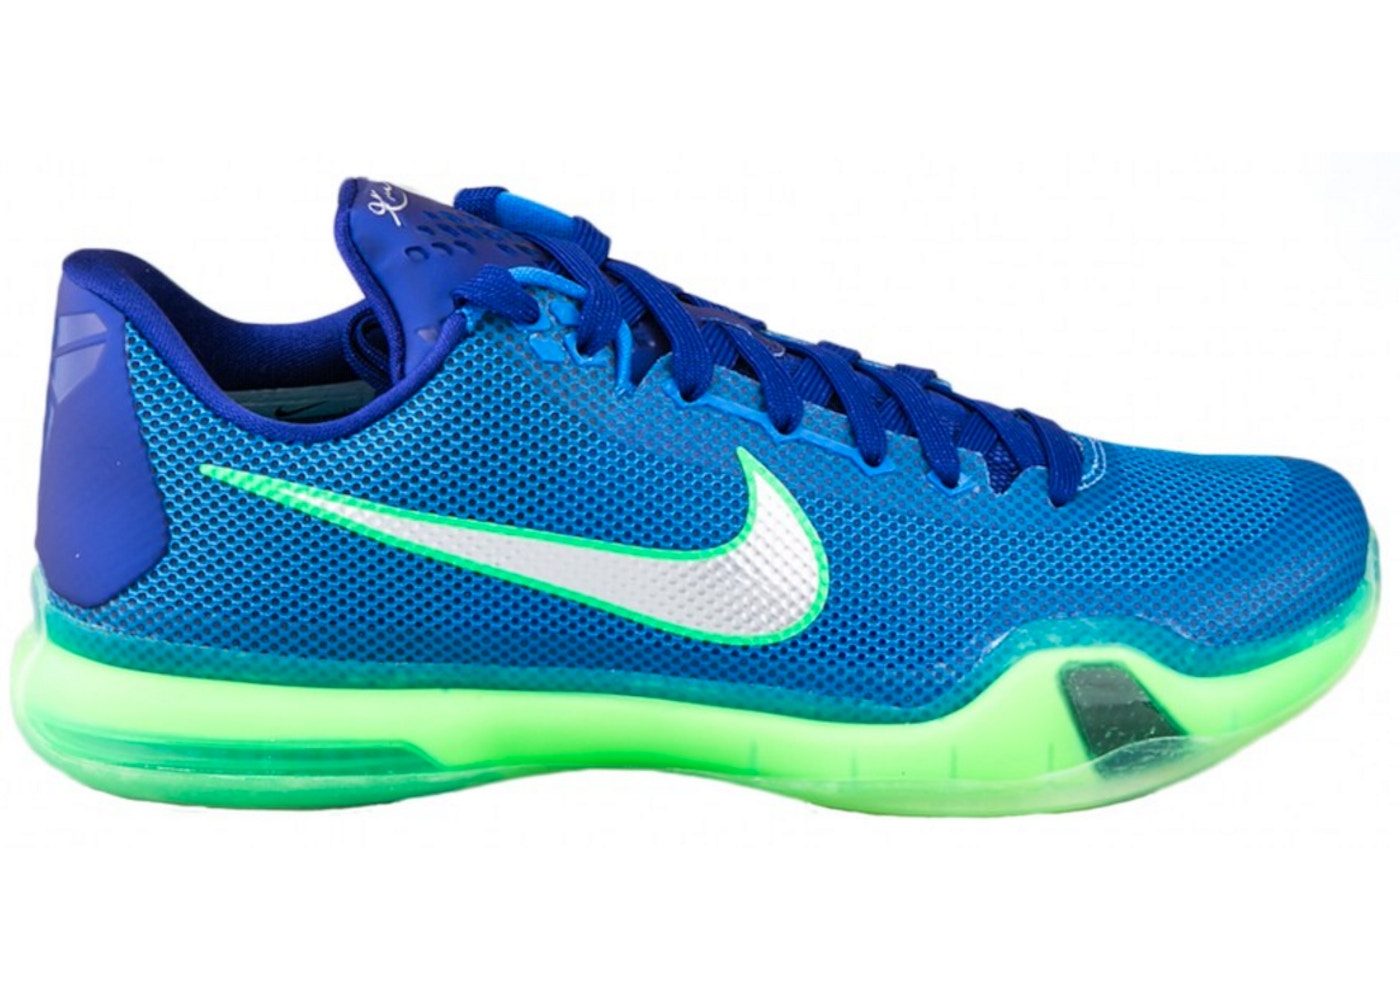 4833ad9fd465 Kobe 10 Emerald City - 705317-402